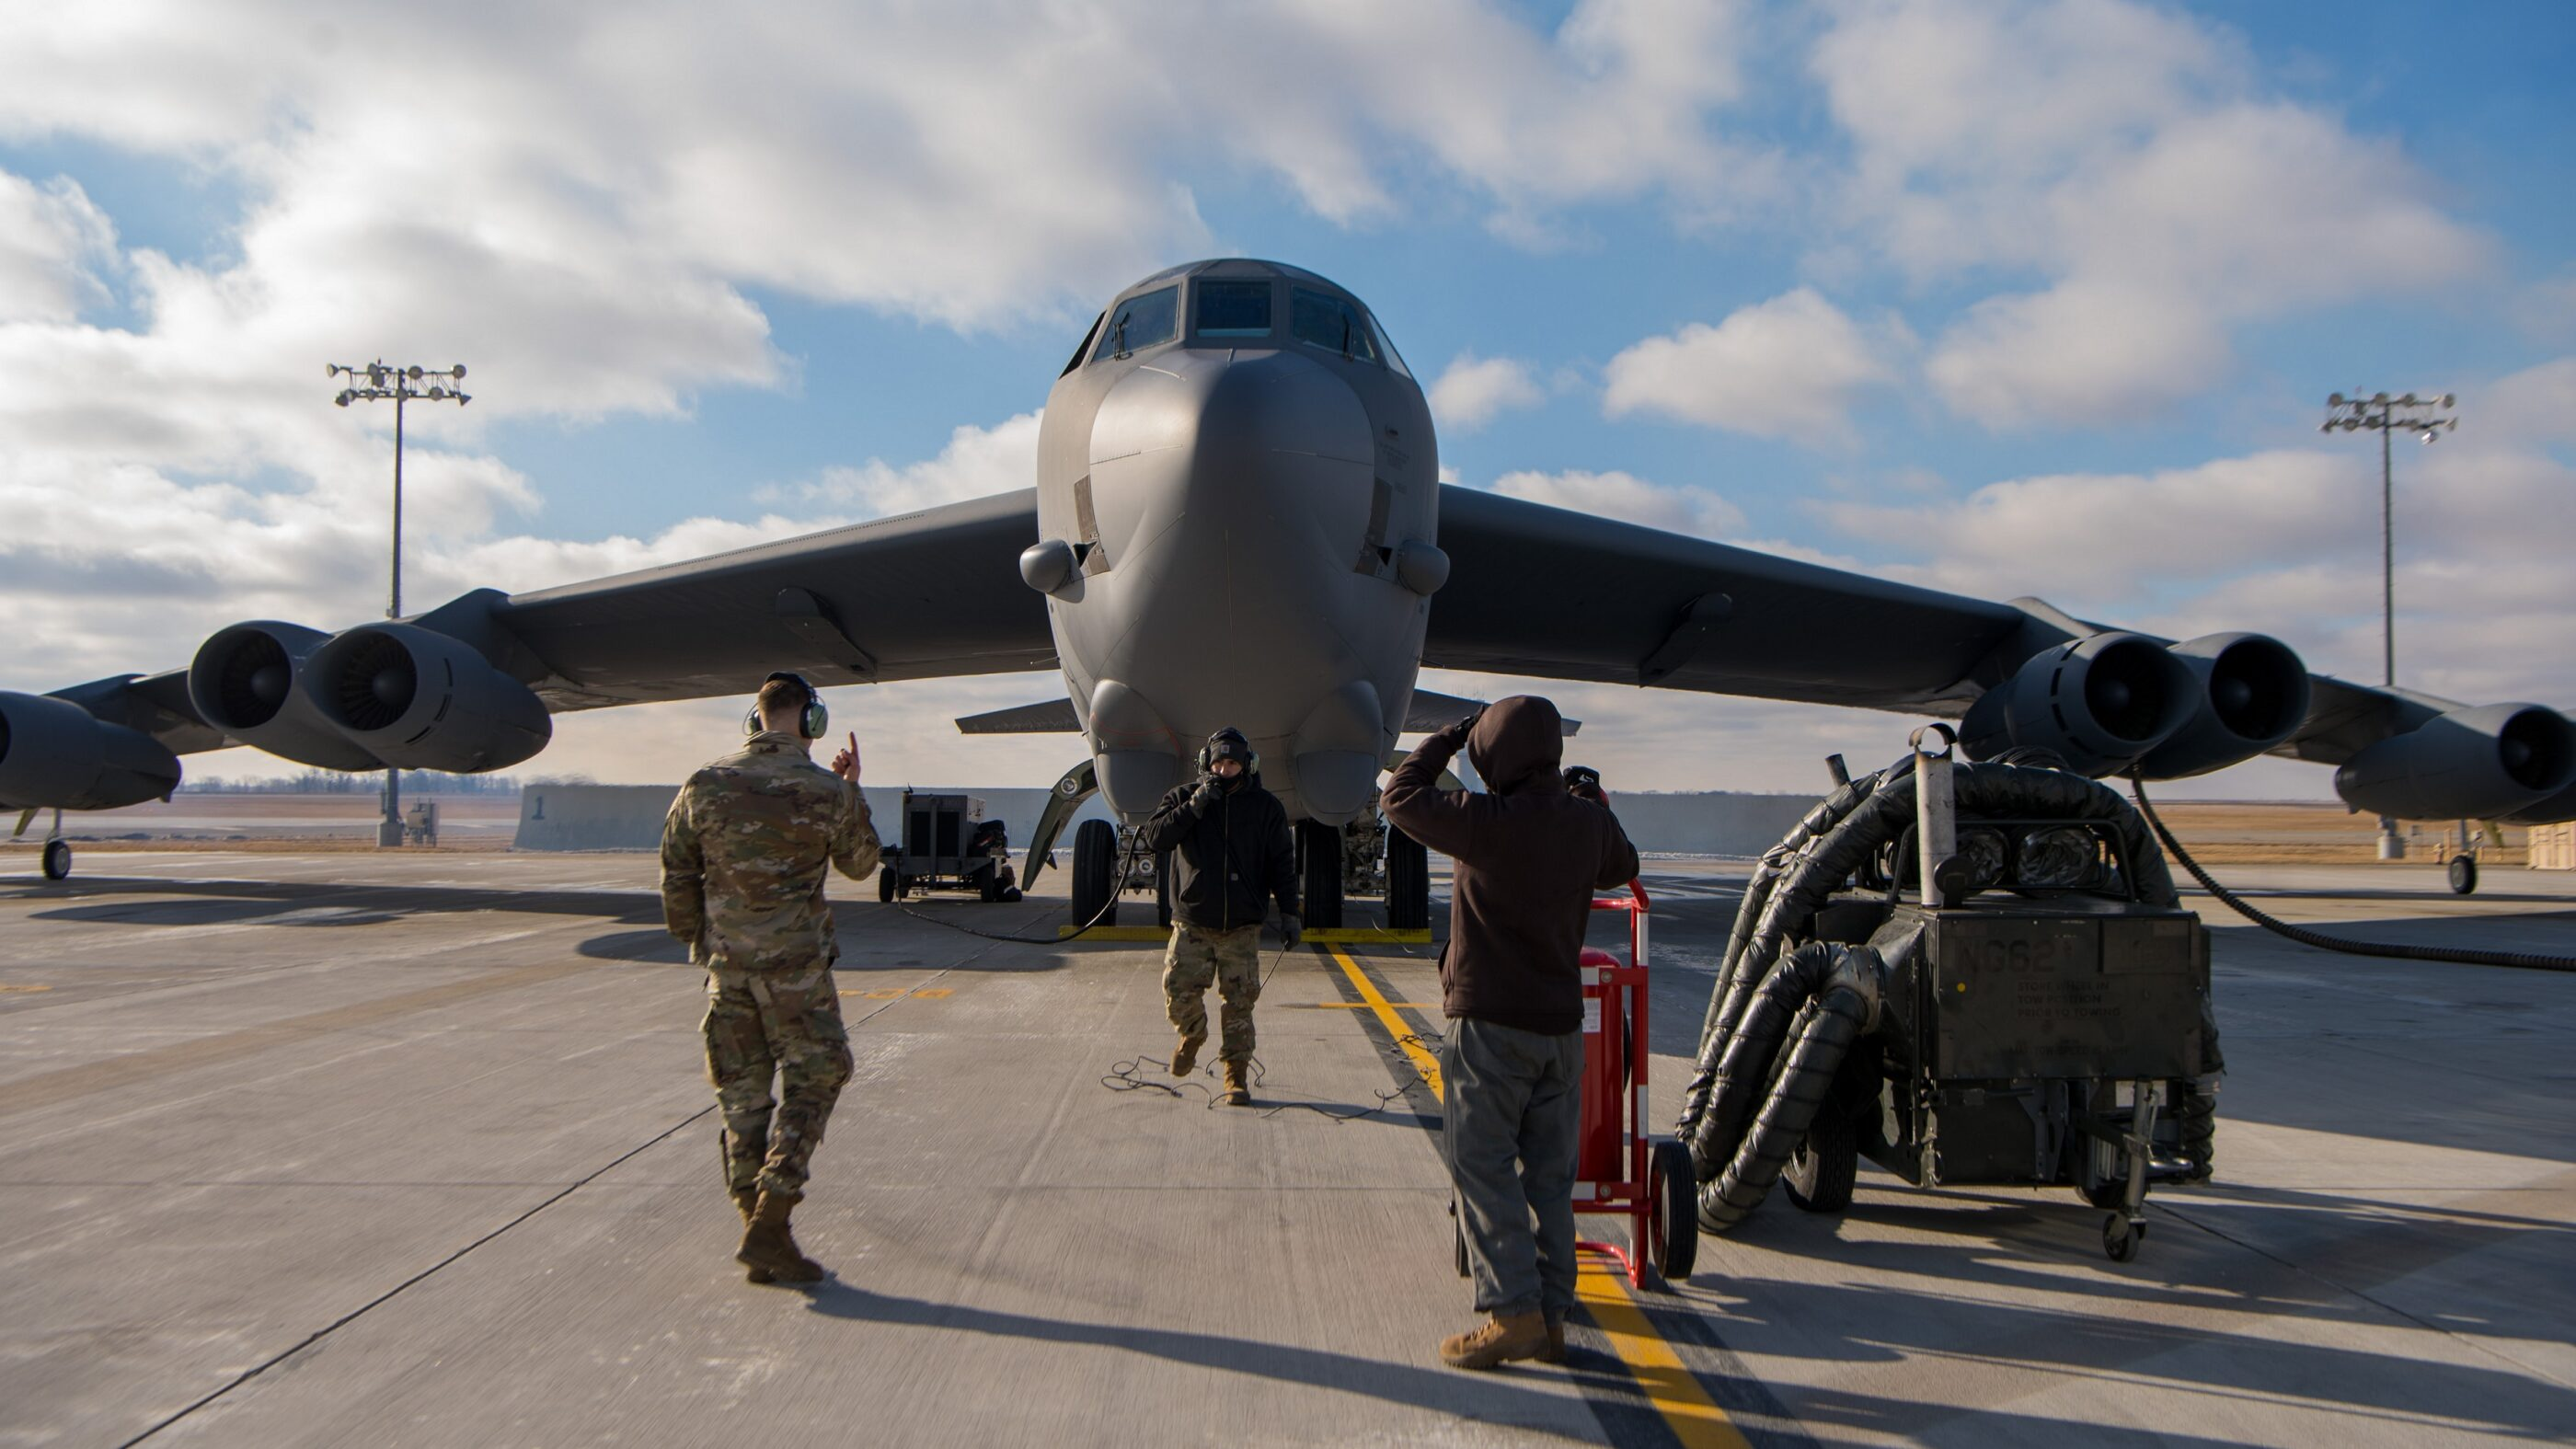 U.S. Air Force B-52H bombers conduct short-notice mission into Middle East